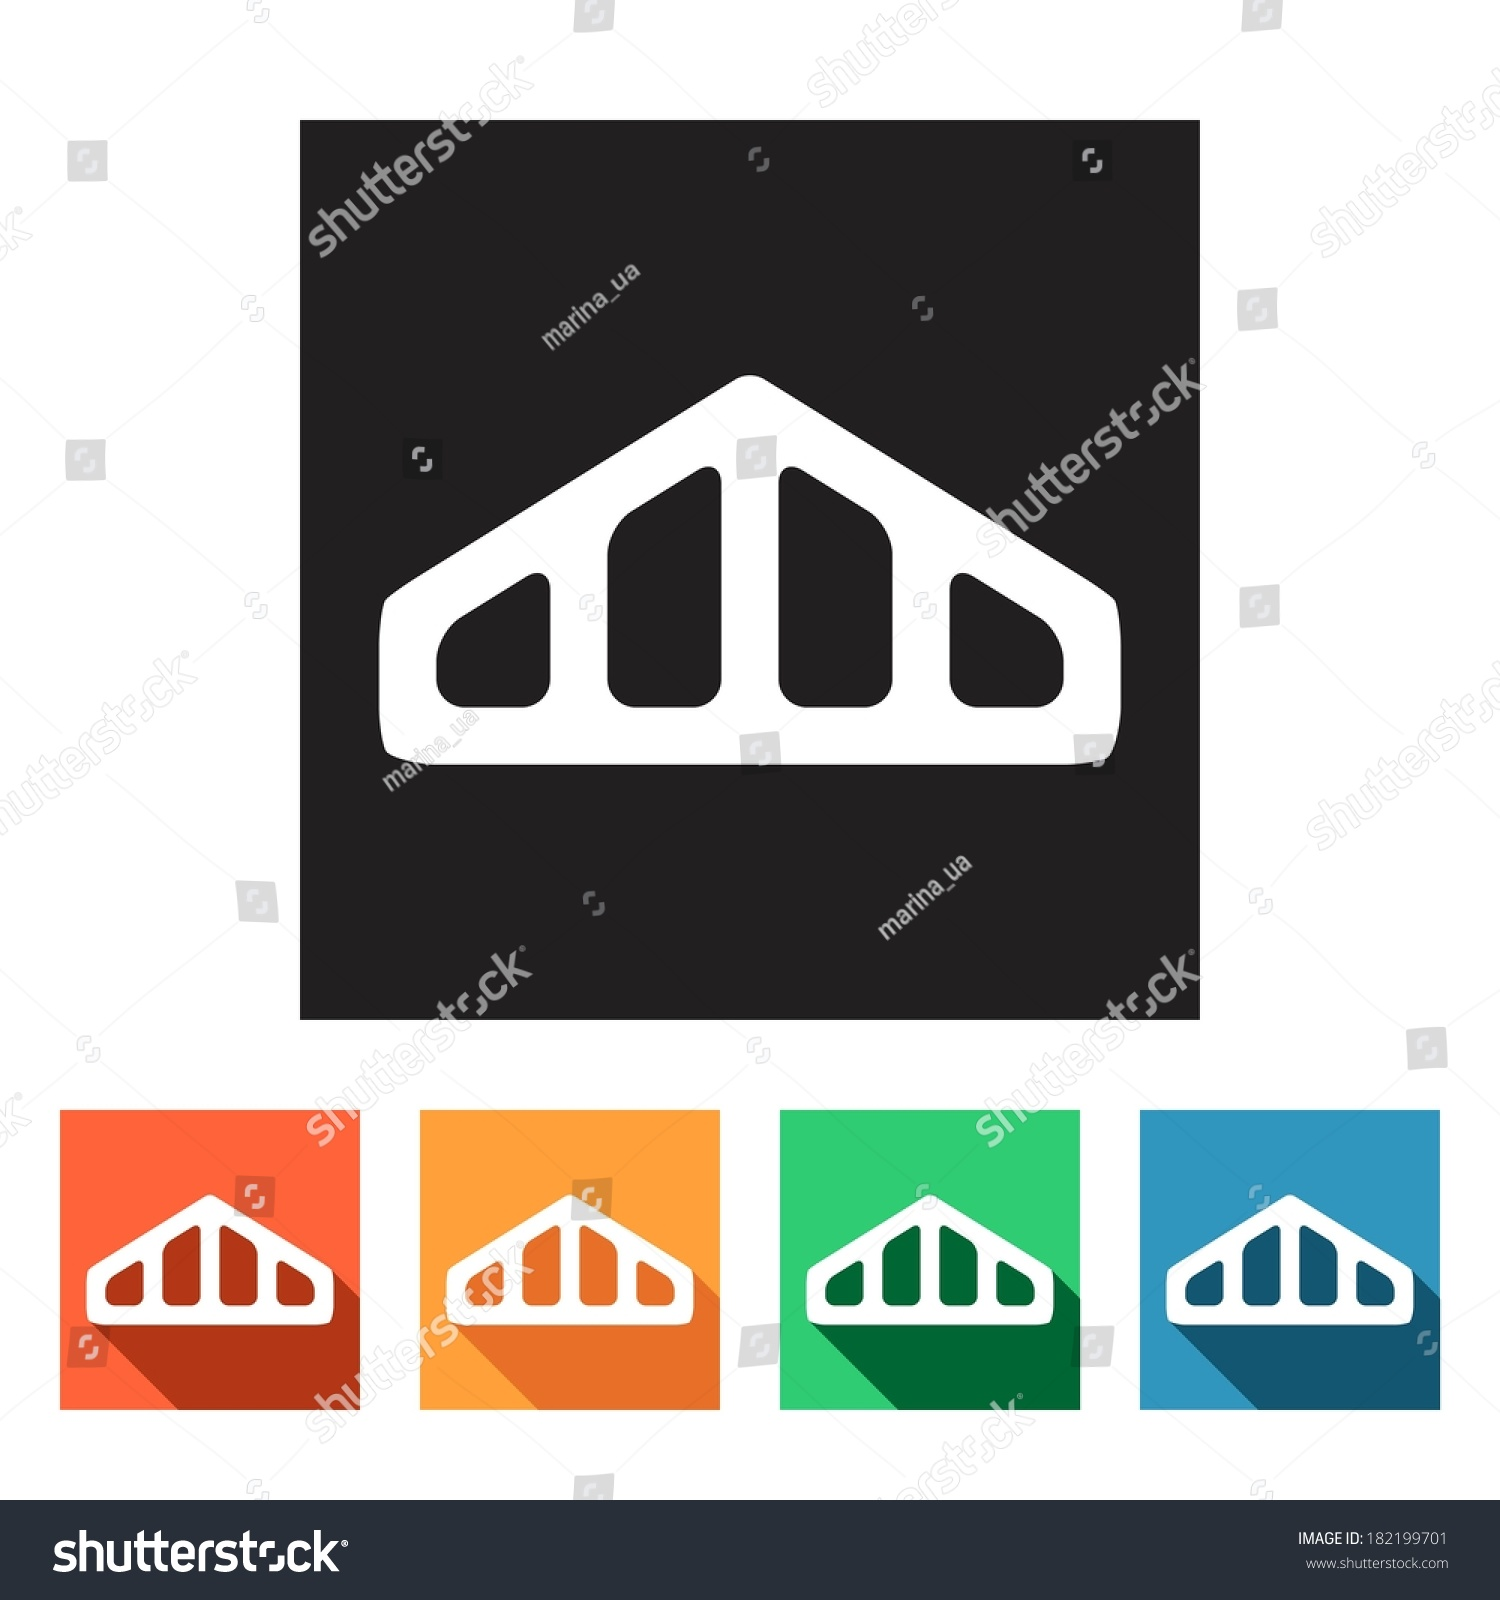 house remodel set flat colored simple stock vector 182199701